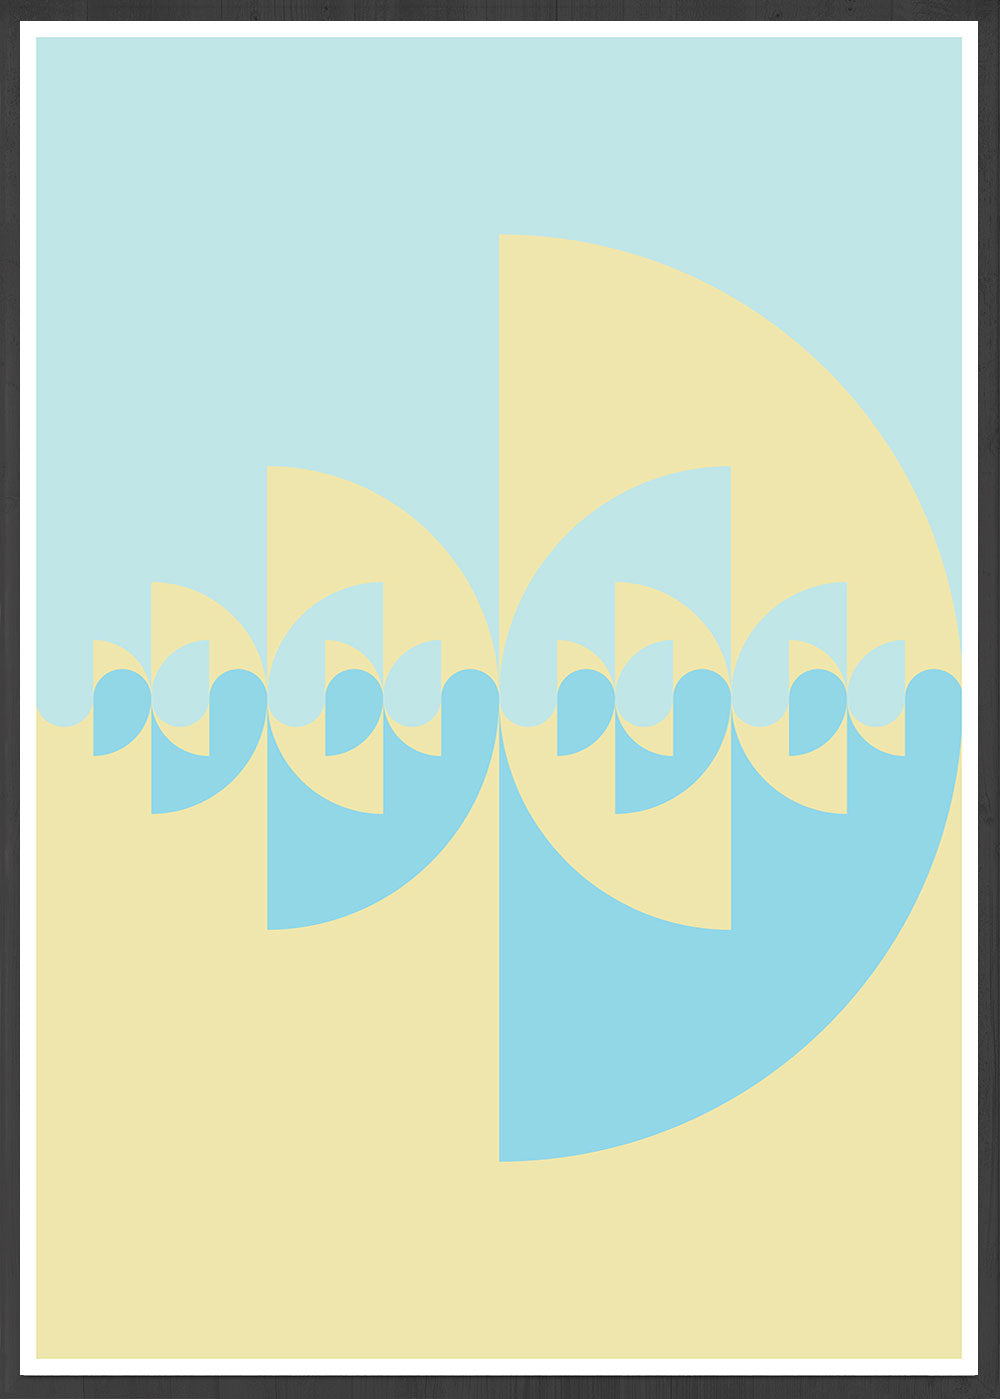 Sigil Day Digital Art Pattern in frame